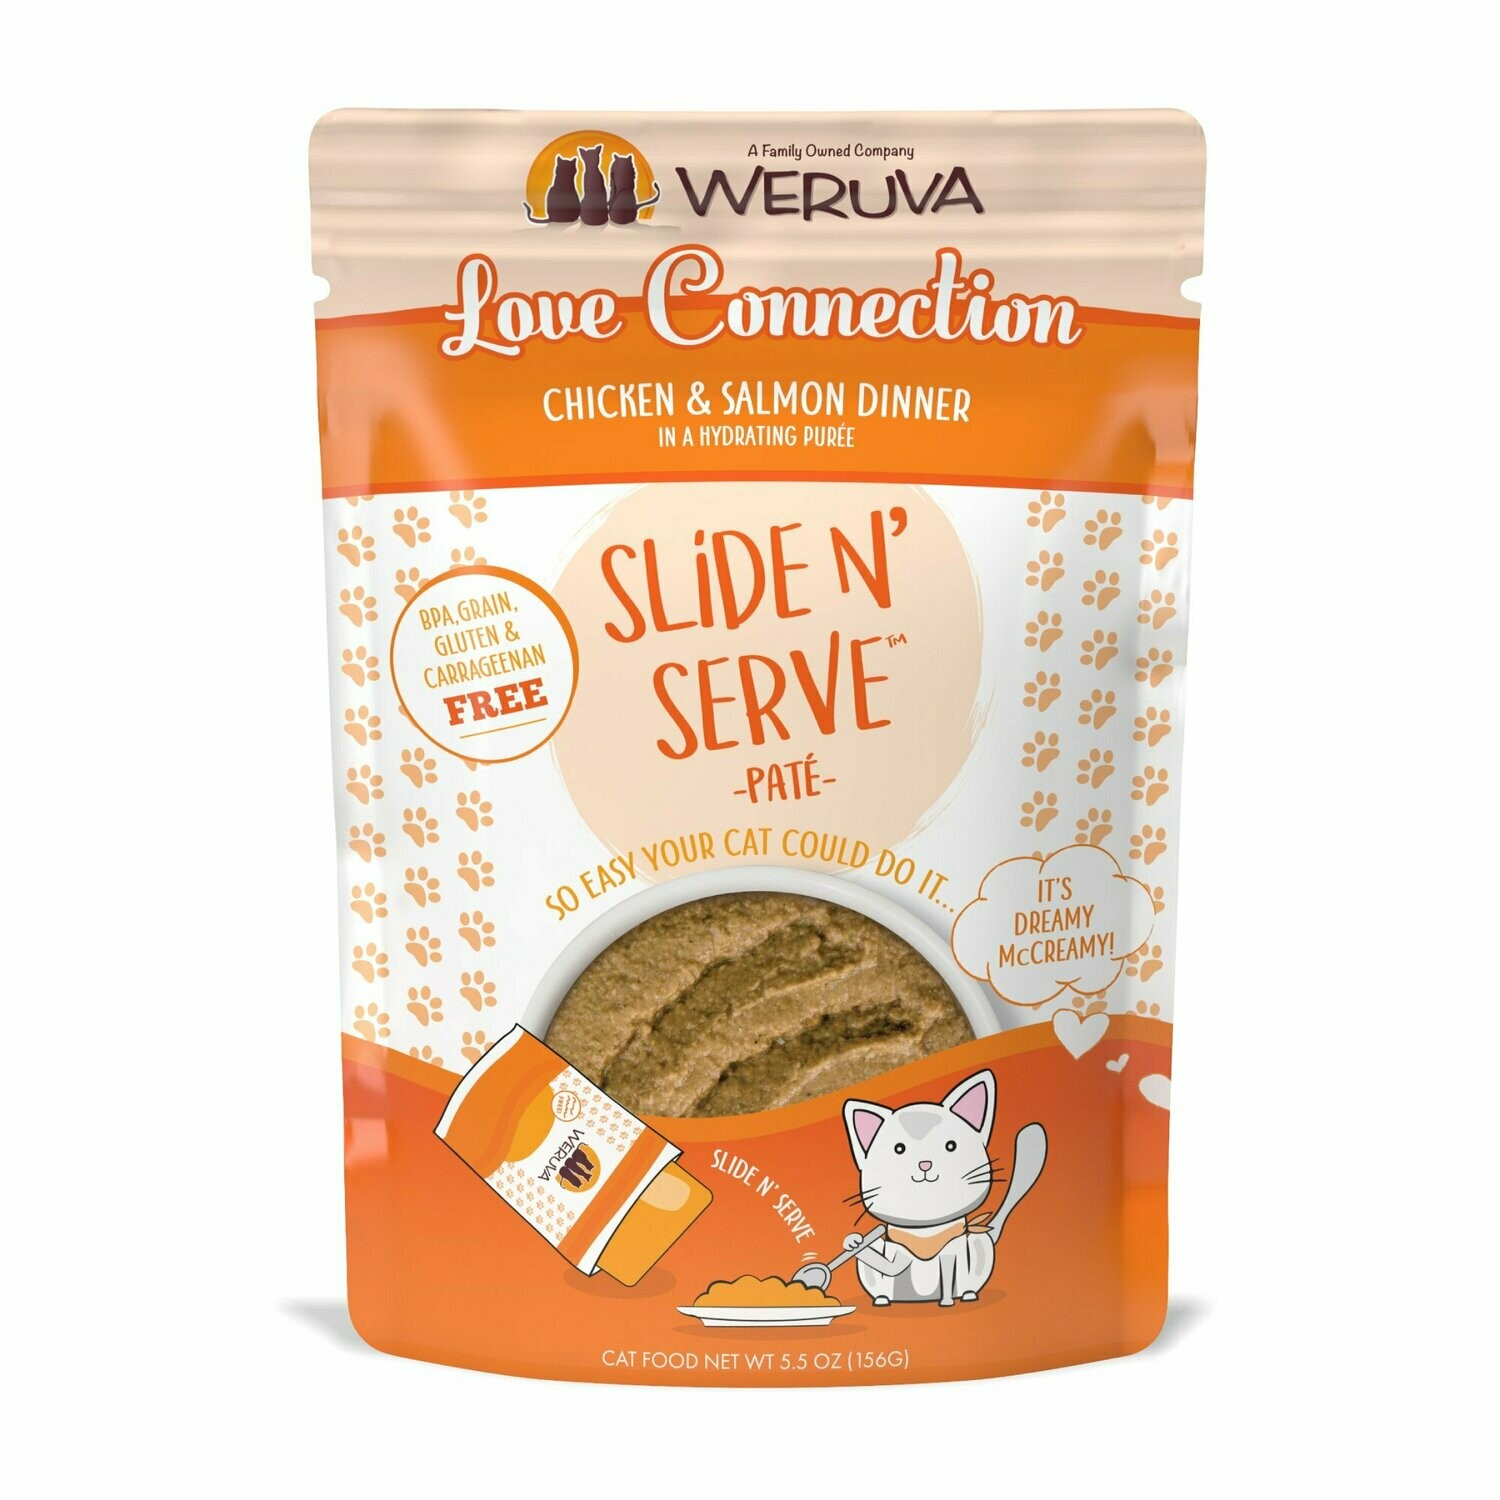 WERUVA Love Connection BPA grain gluten free - chicken and salmon dinner slide and serve pate for cats 5.5 ounce pouches 12 count (4/20)